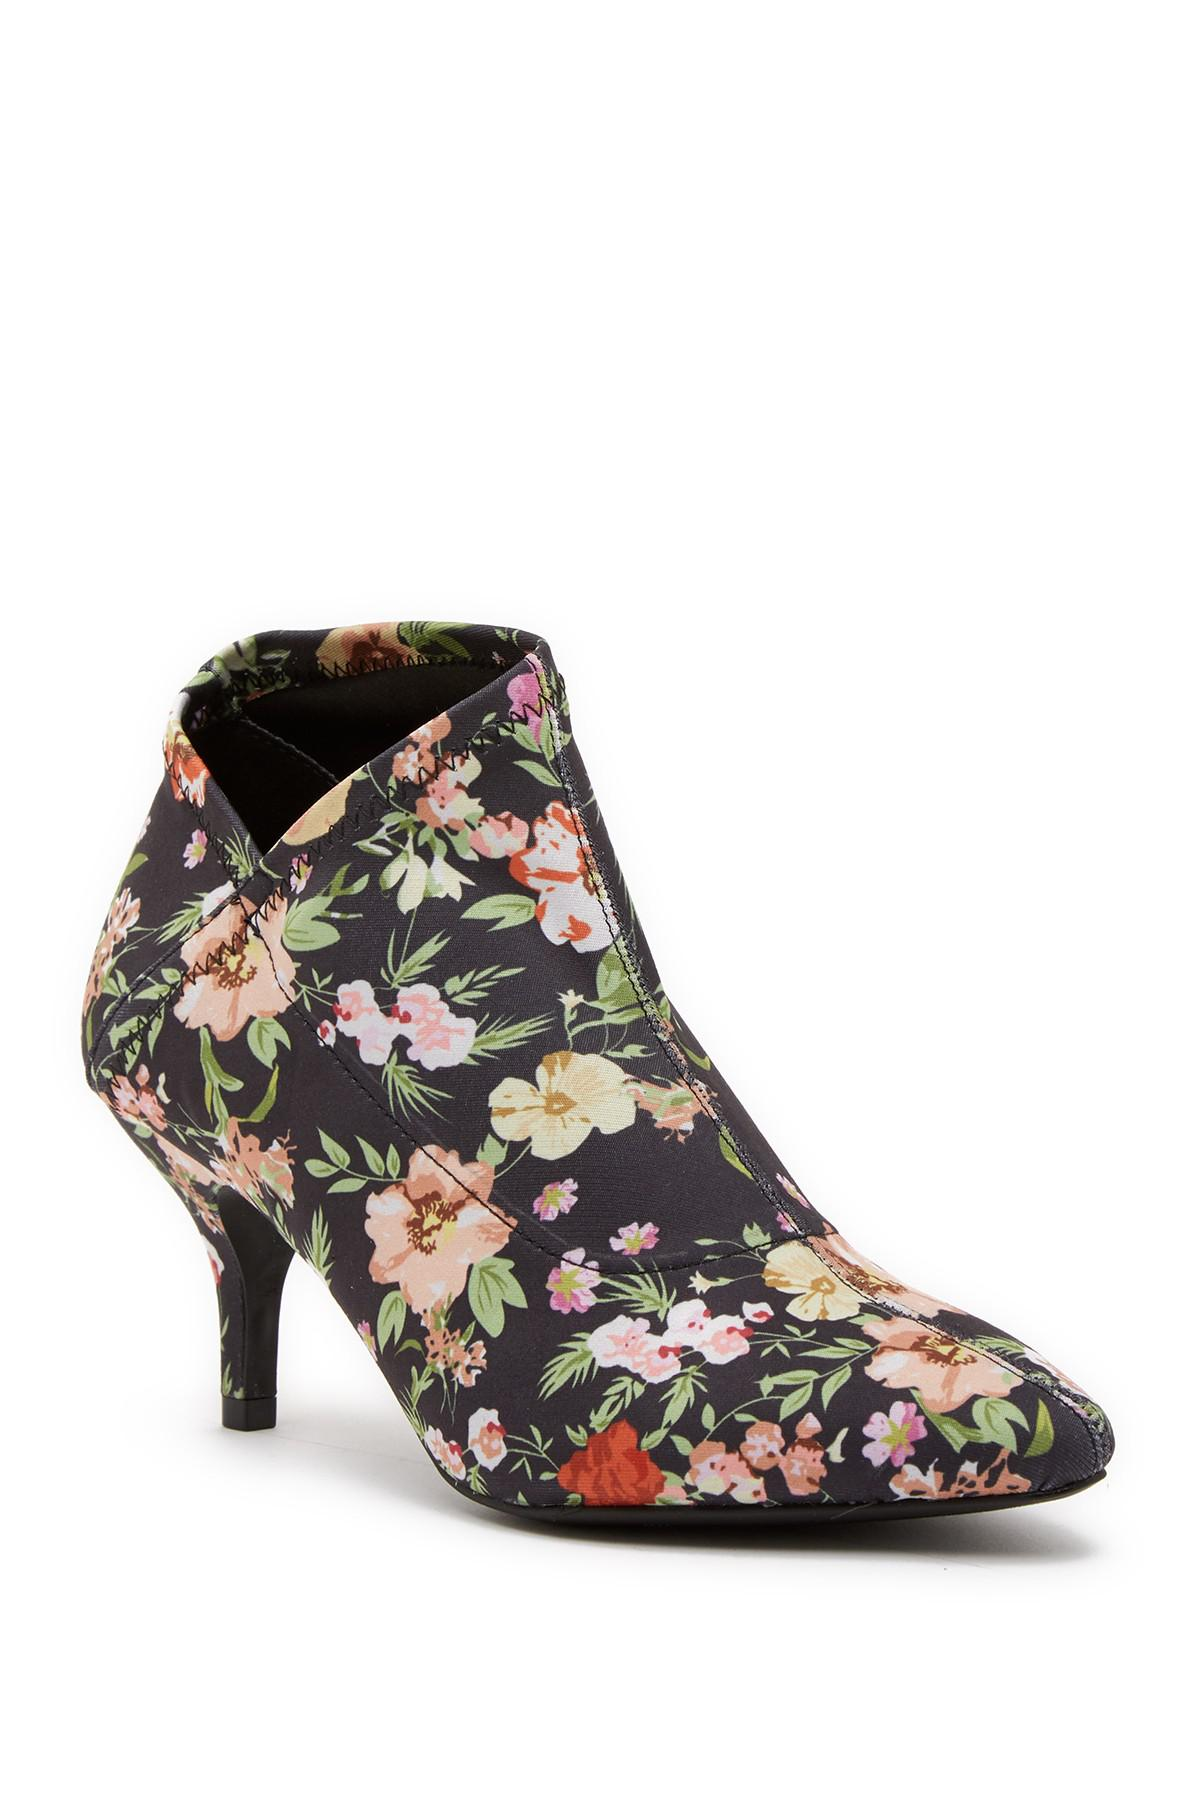 MIA Charleese Stretch Ankle Boot 5P5VTsha